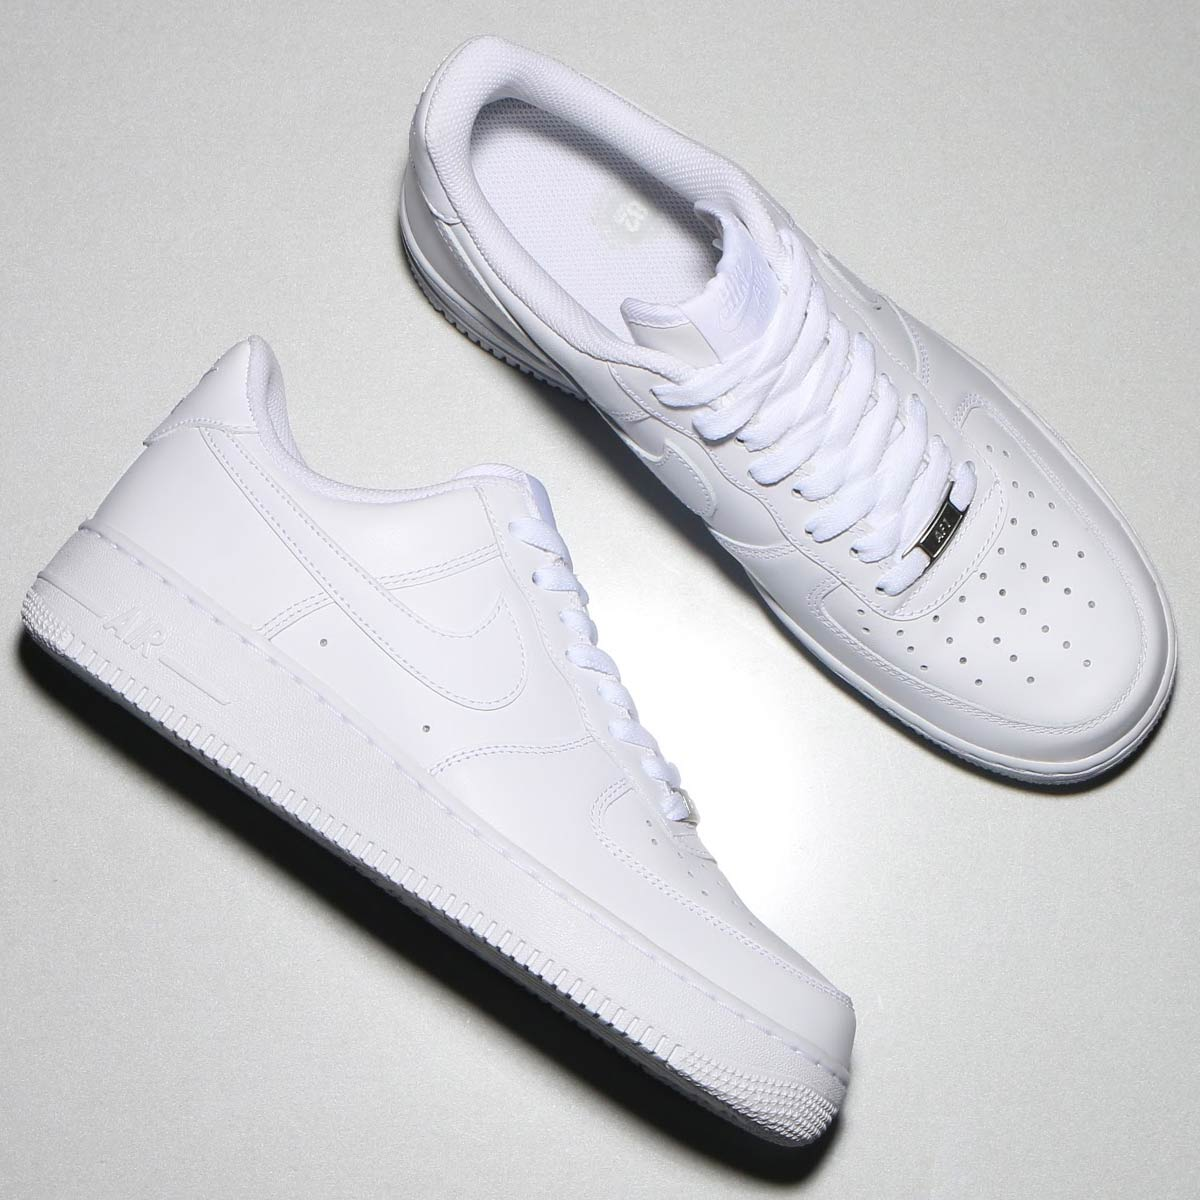 atmos-tokyo  NIKE AIR FORCE 1   07 (Nike Air Force 1   07) WHITE ... a8ae27985e